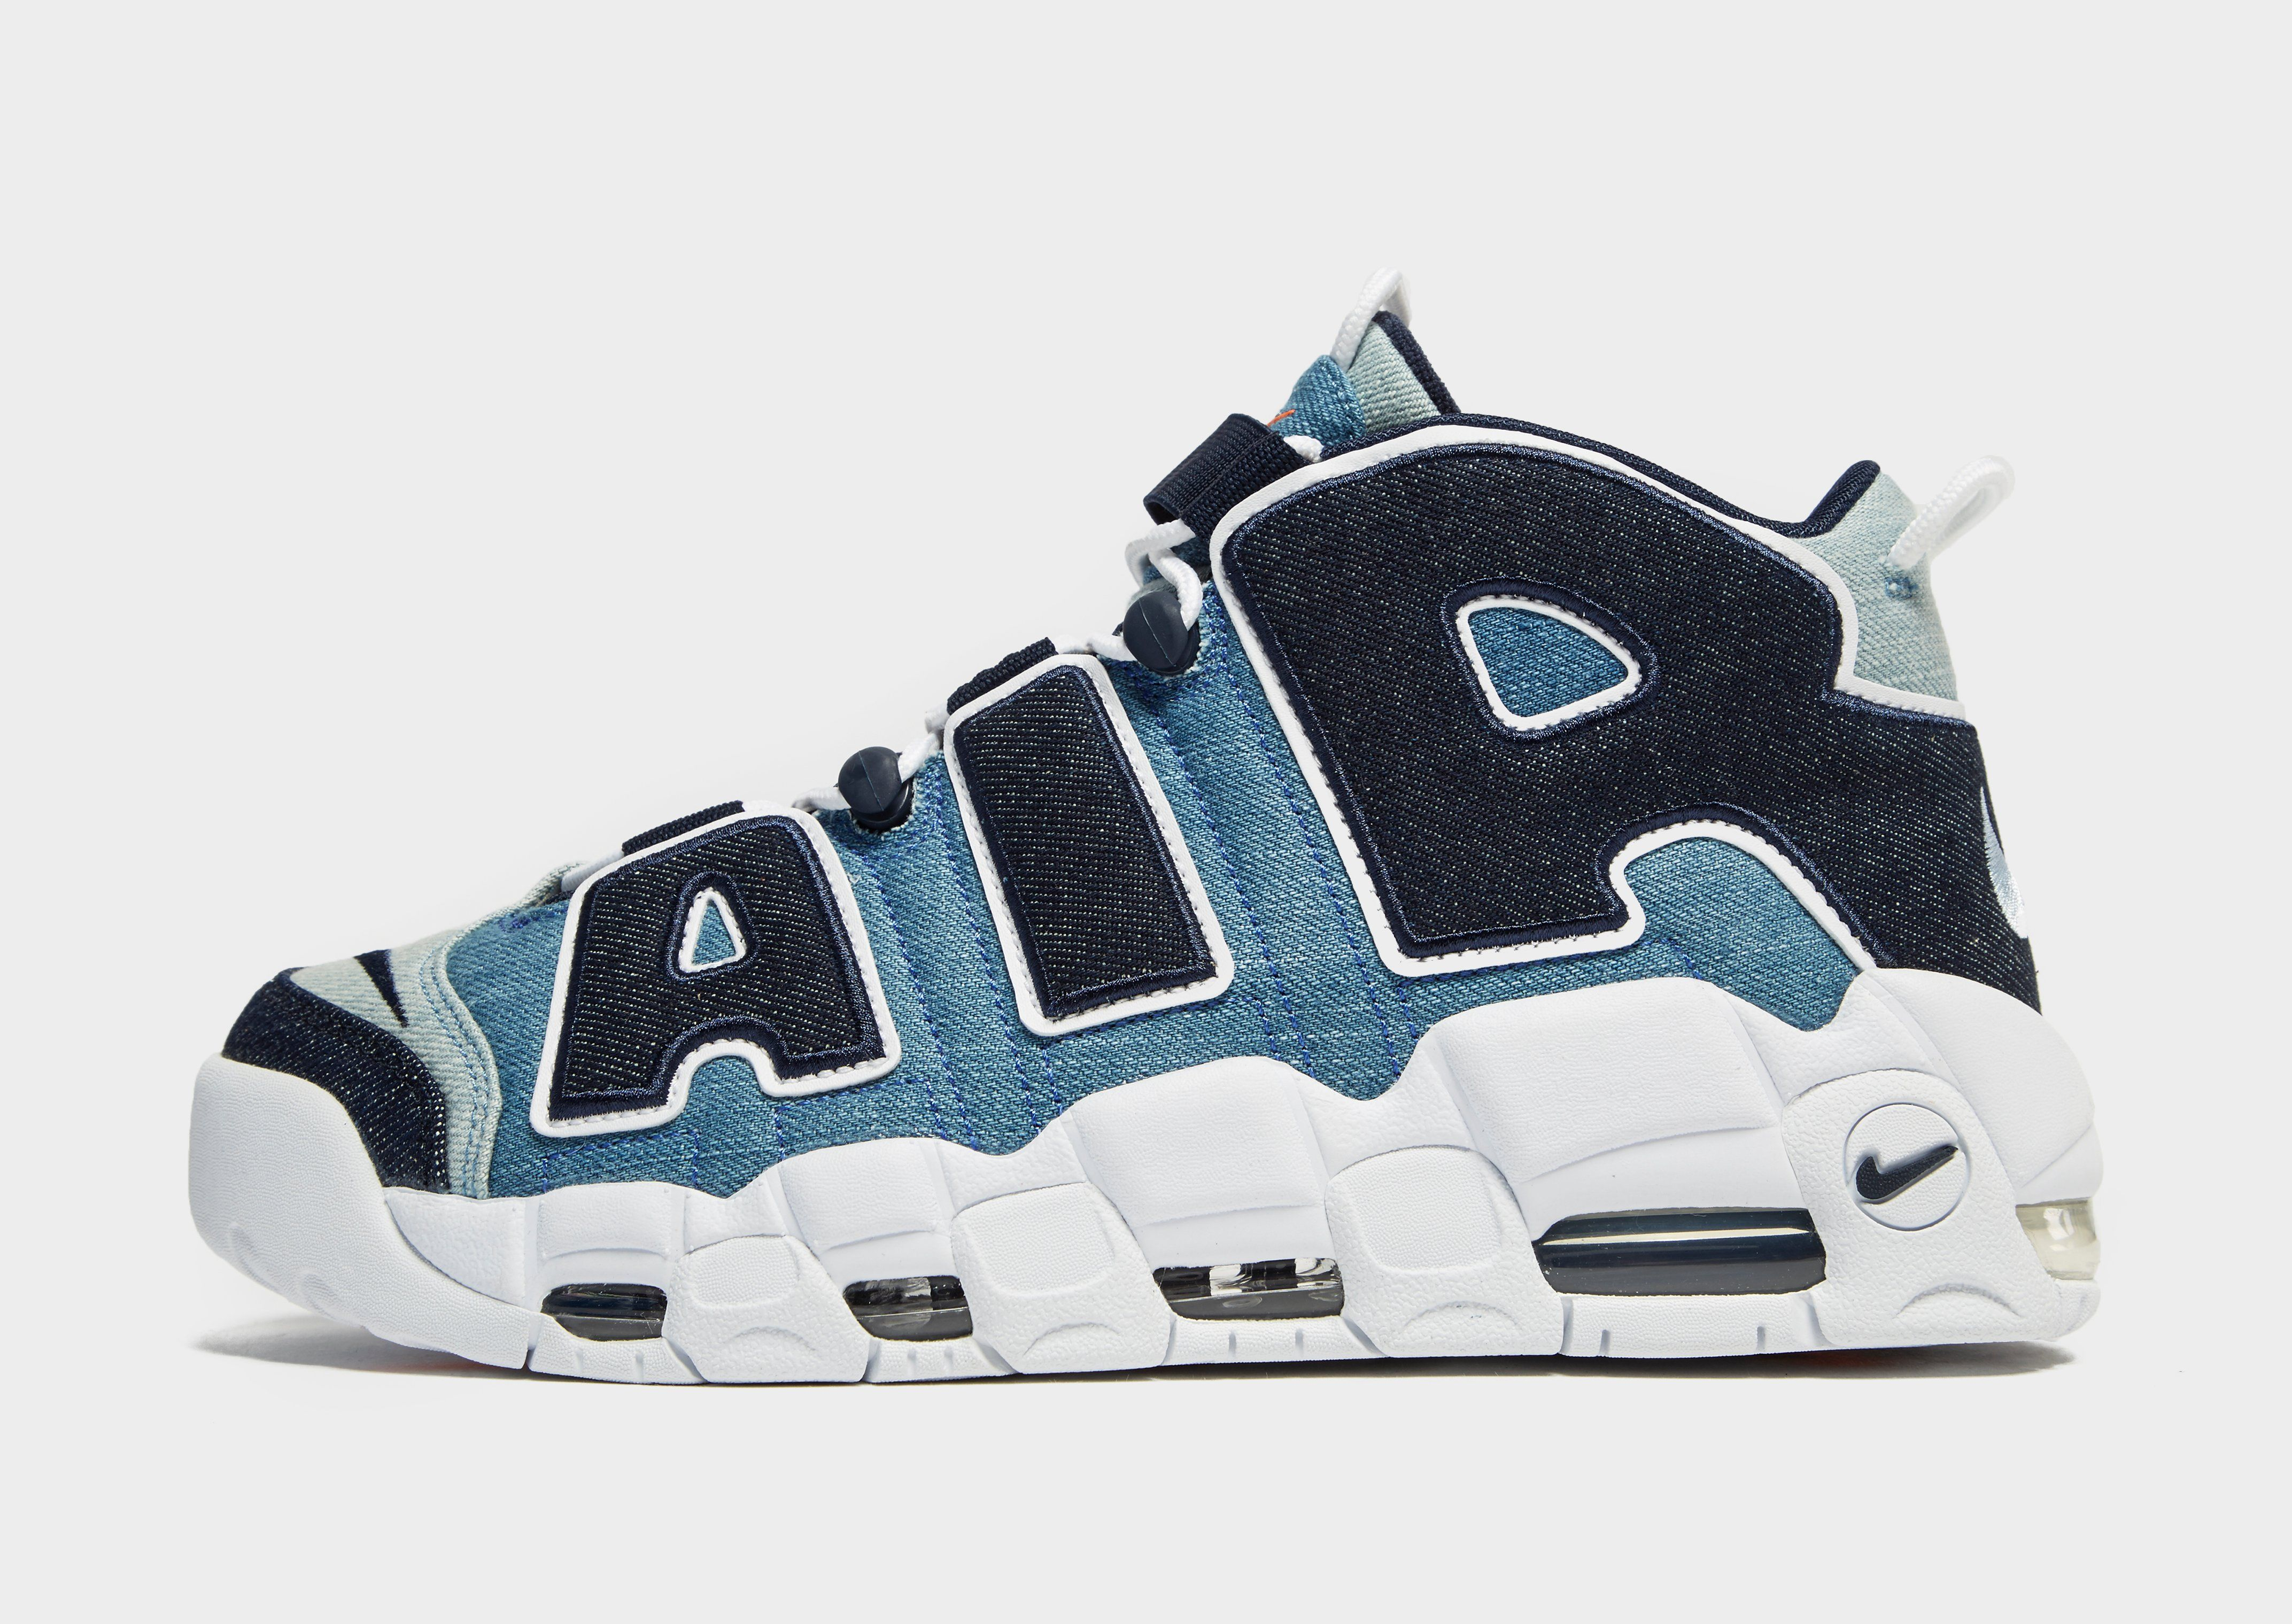 reputable site 0b895 6770b Nike Air More Uptempo 96 QS | JD Sports Ireland